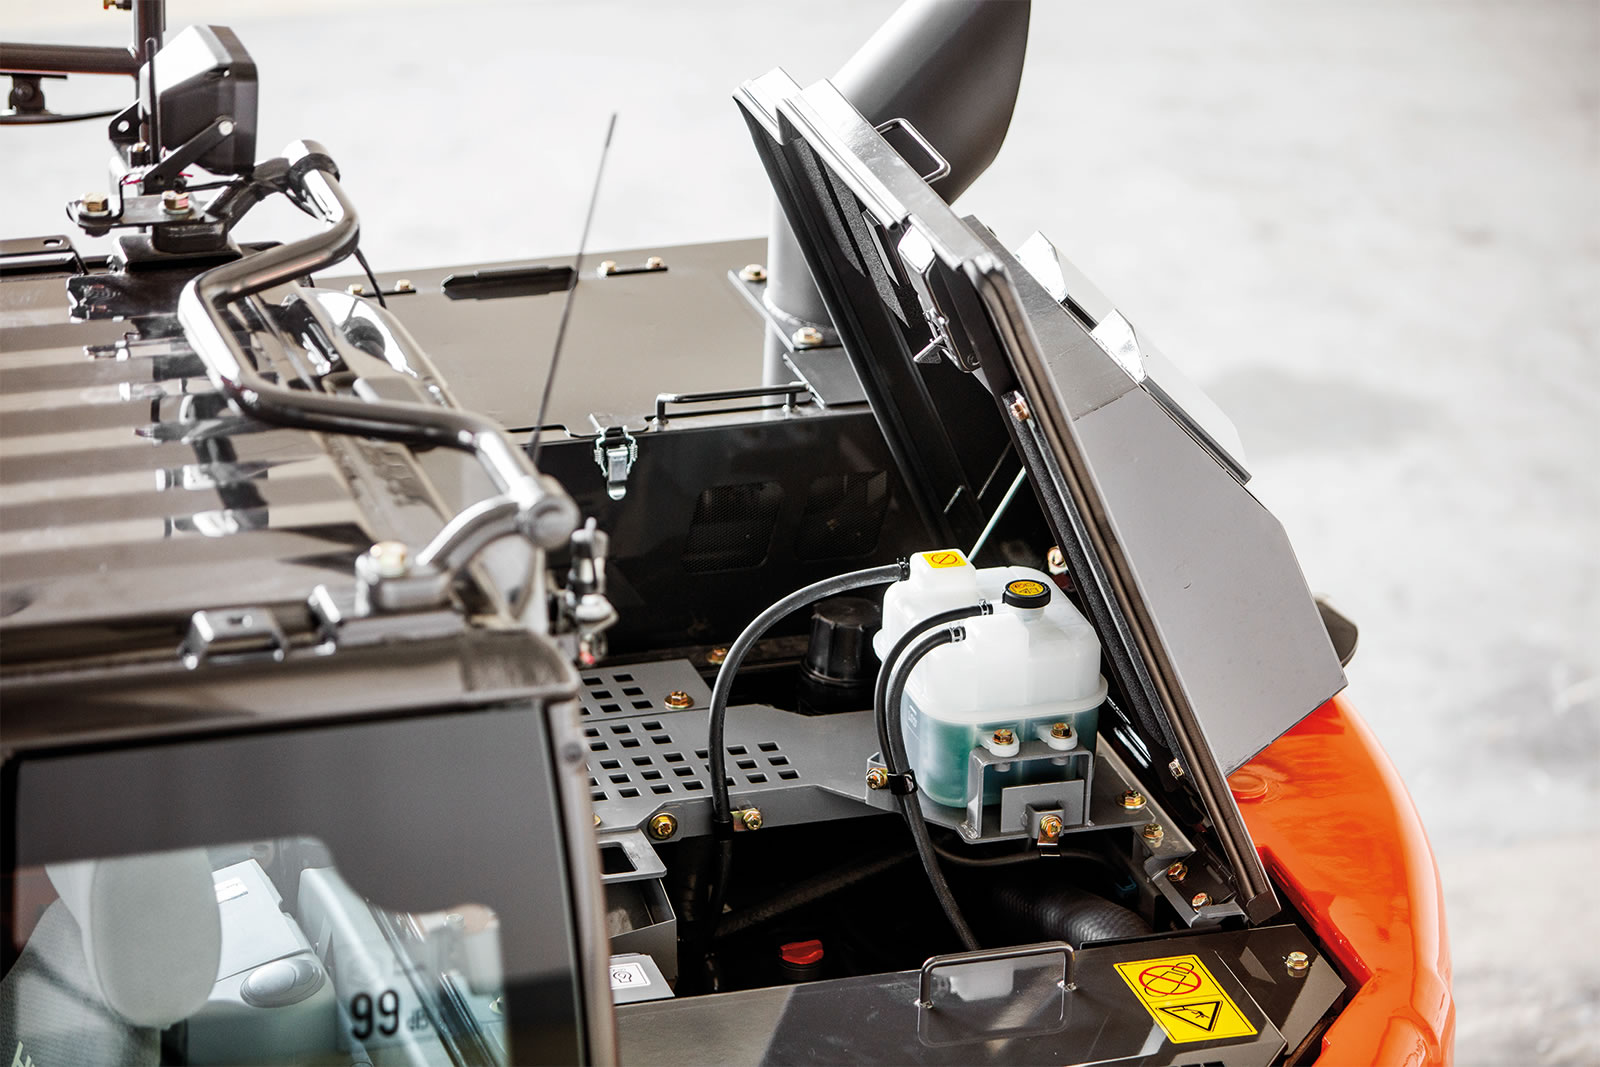 Hitachi construction machinery has an after-treatment device